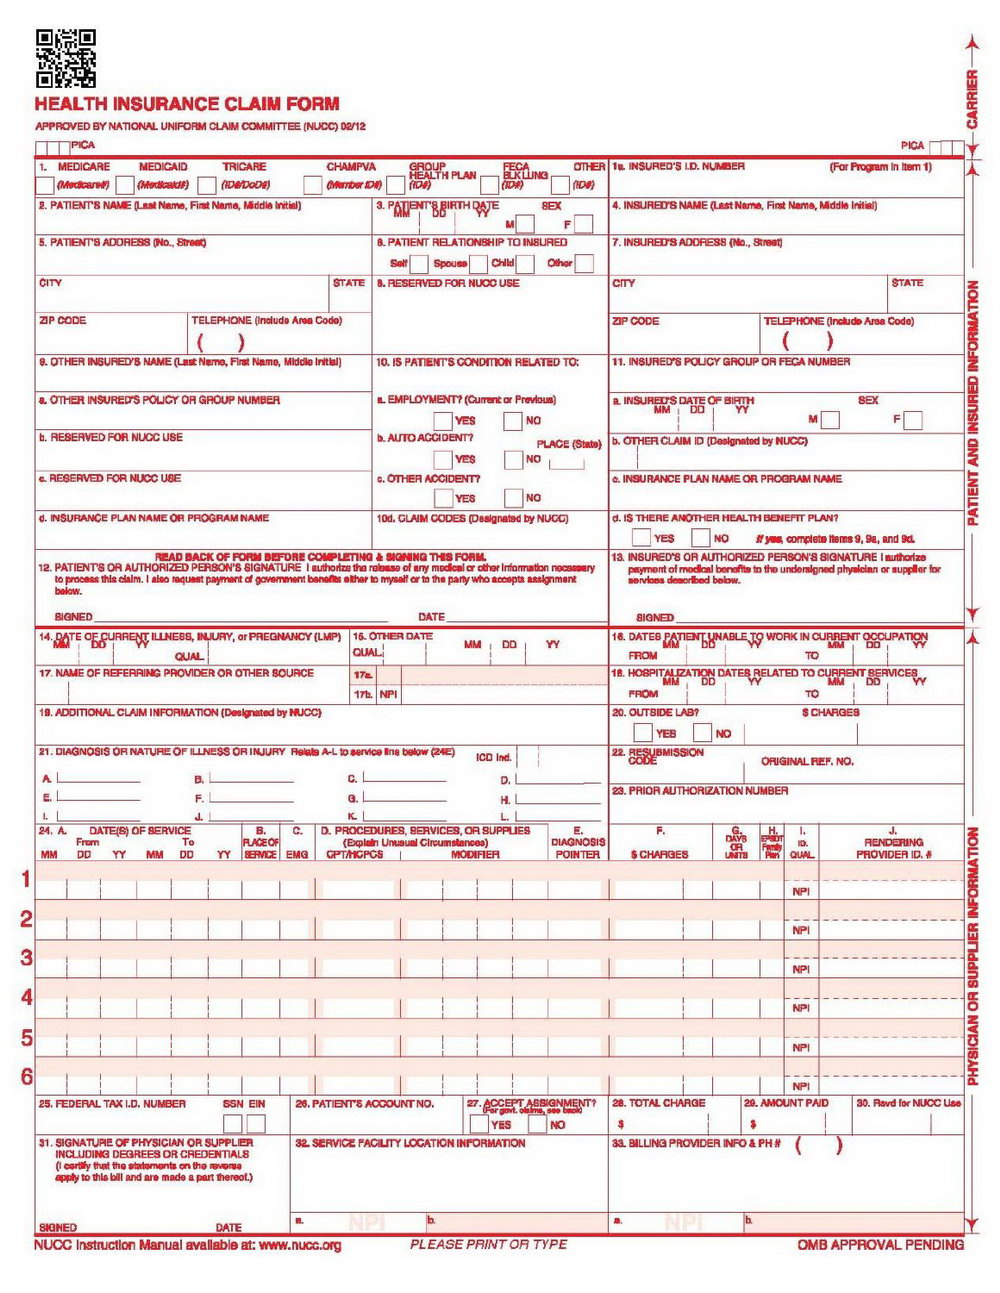 Cms 1500 Form Pdf Free Download